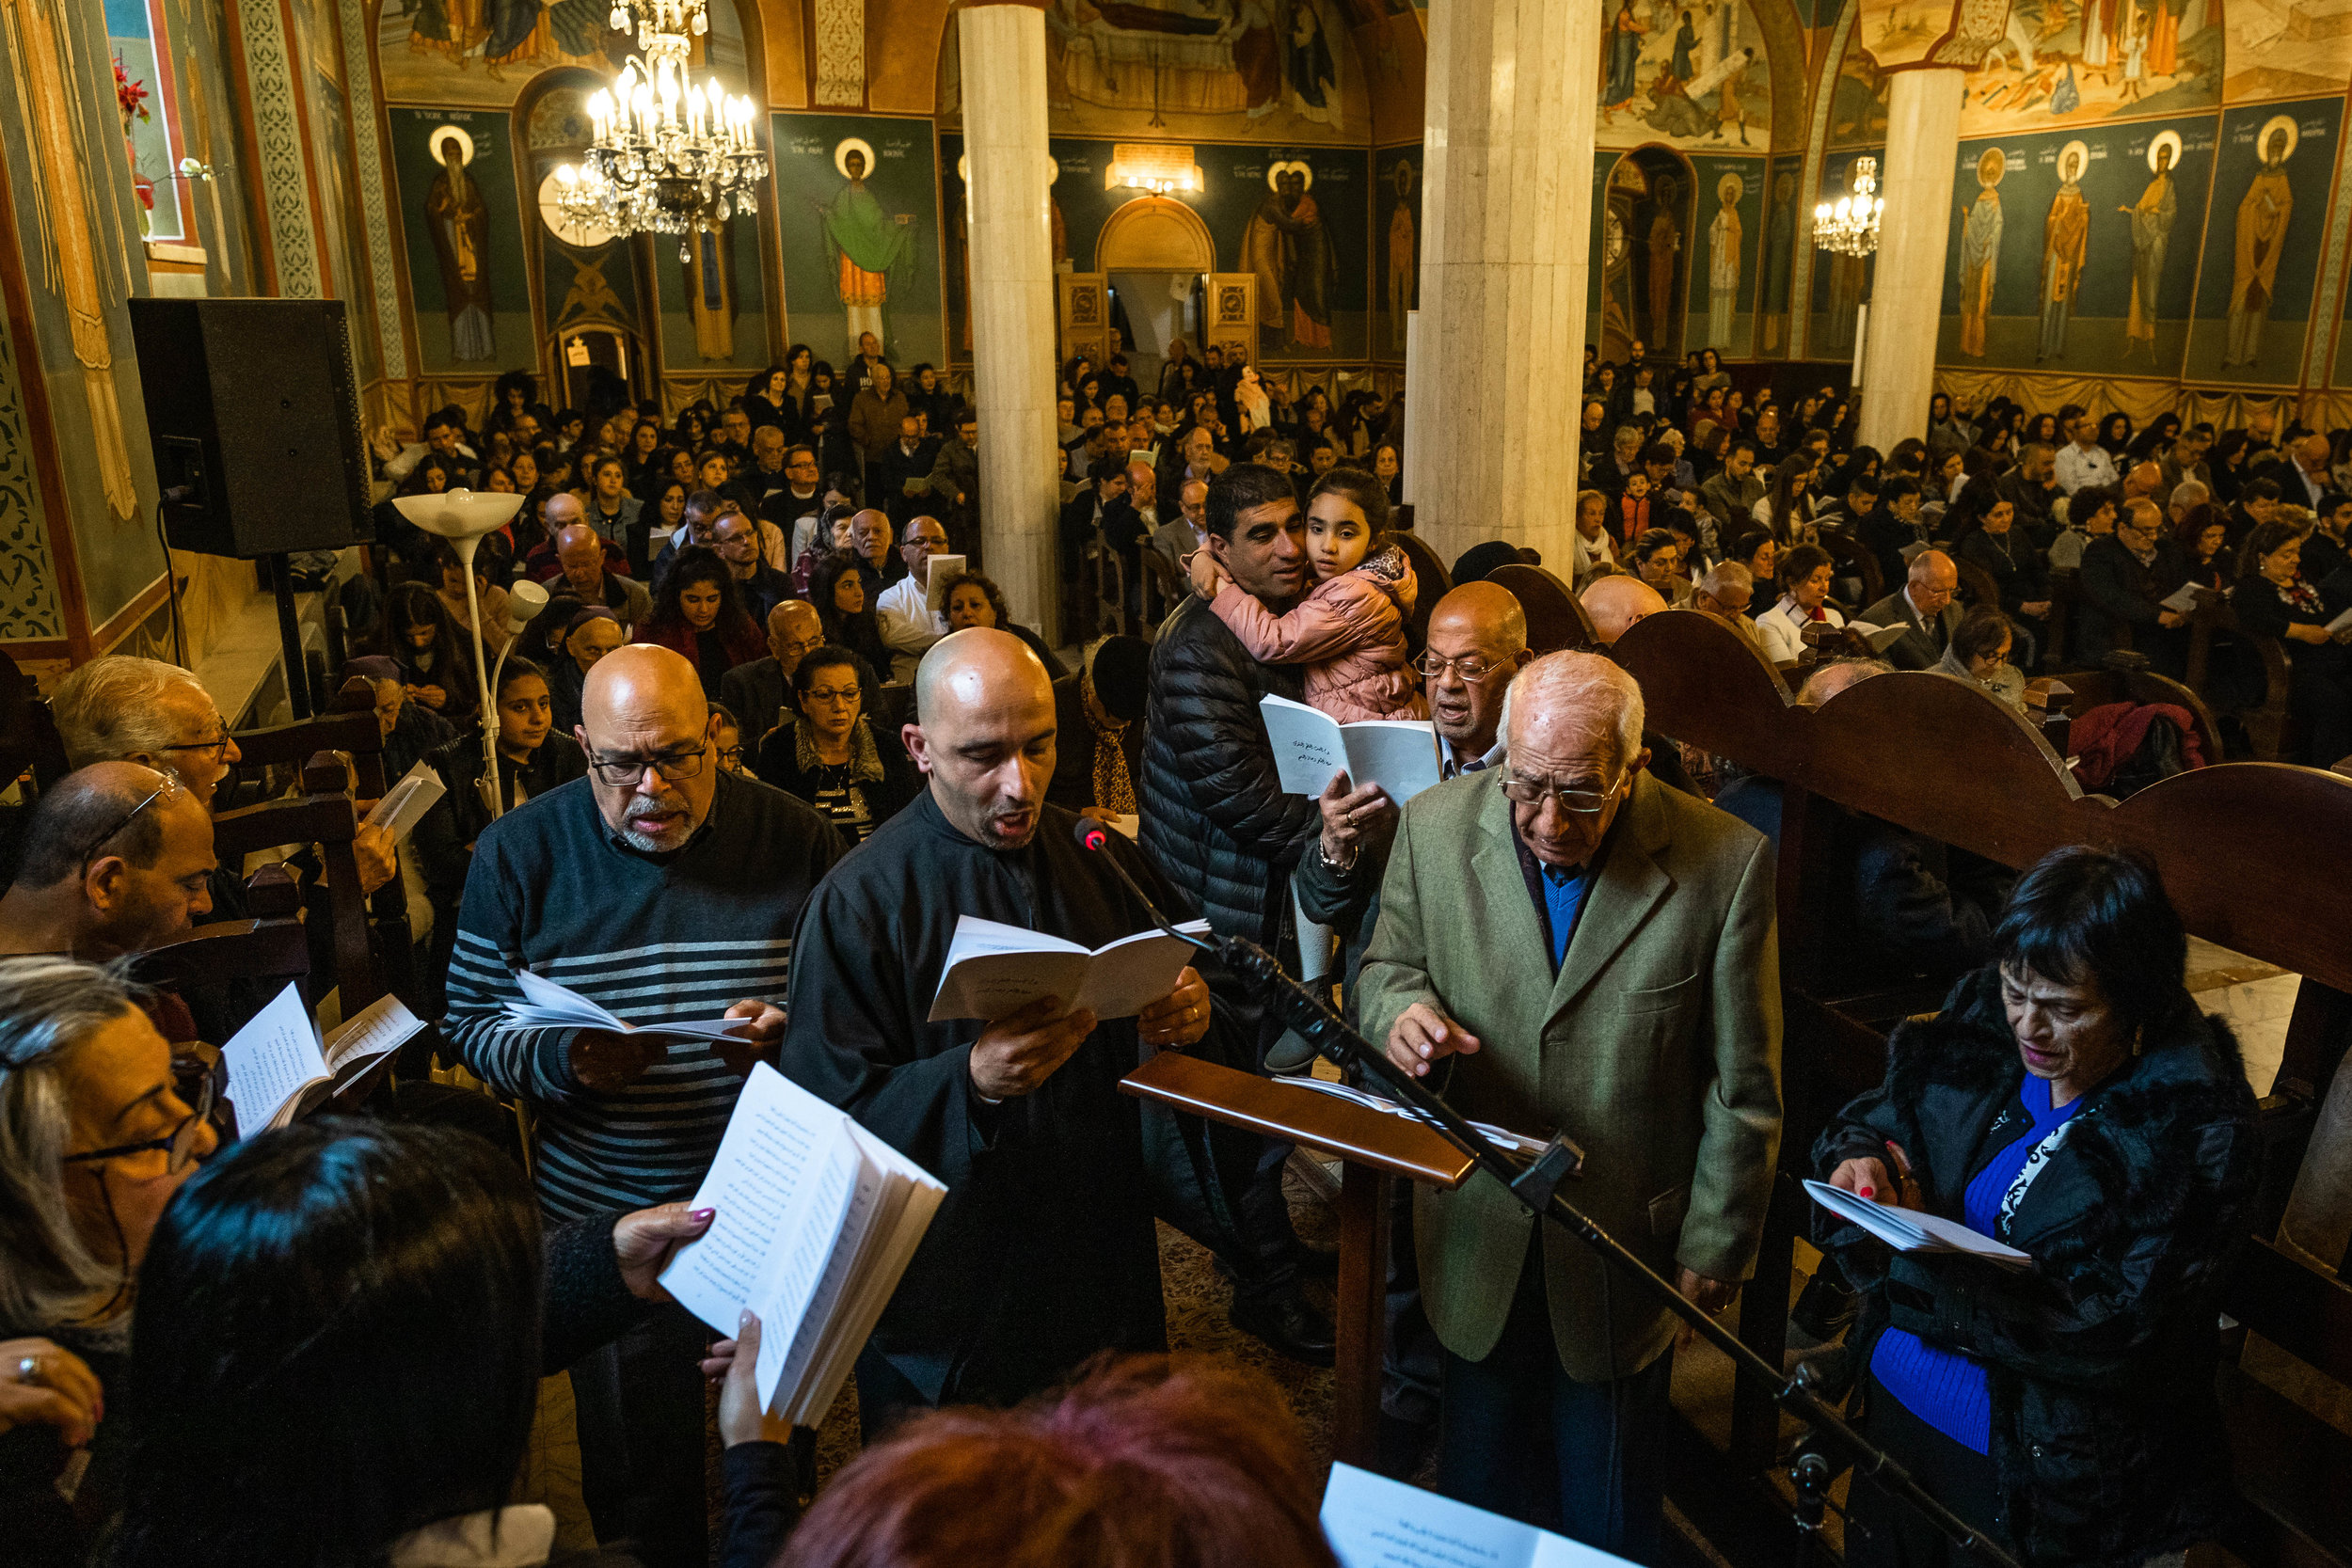 Greek Melkite Service on Easter in the   Melkite   Church   Jerusalem